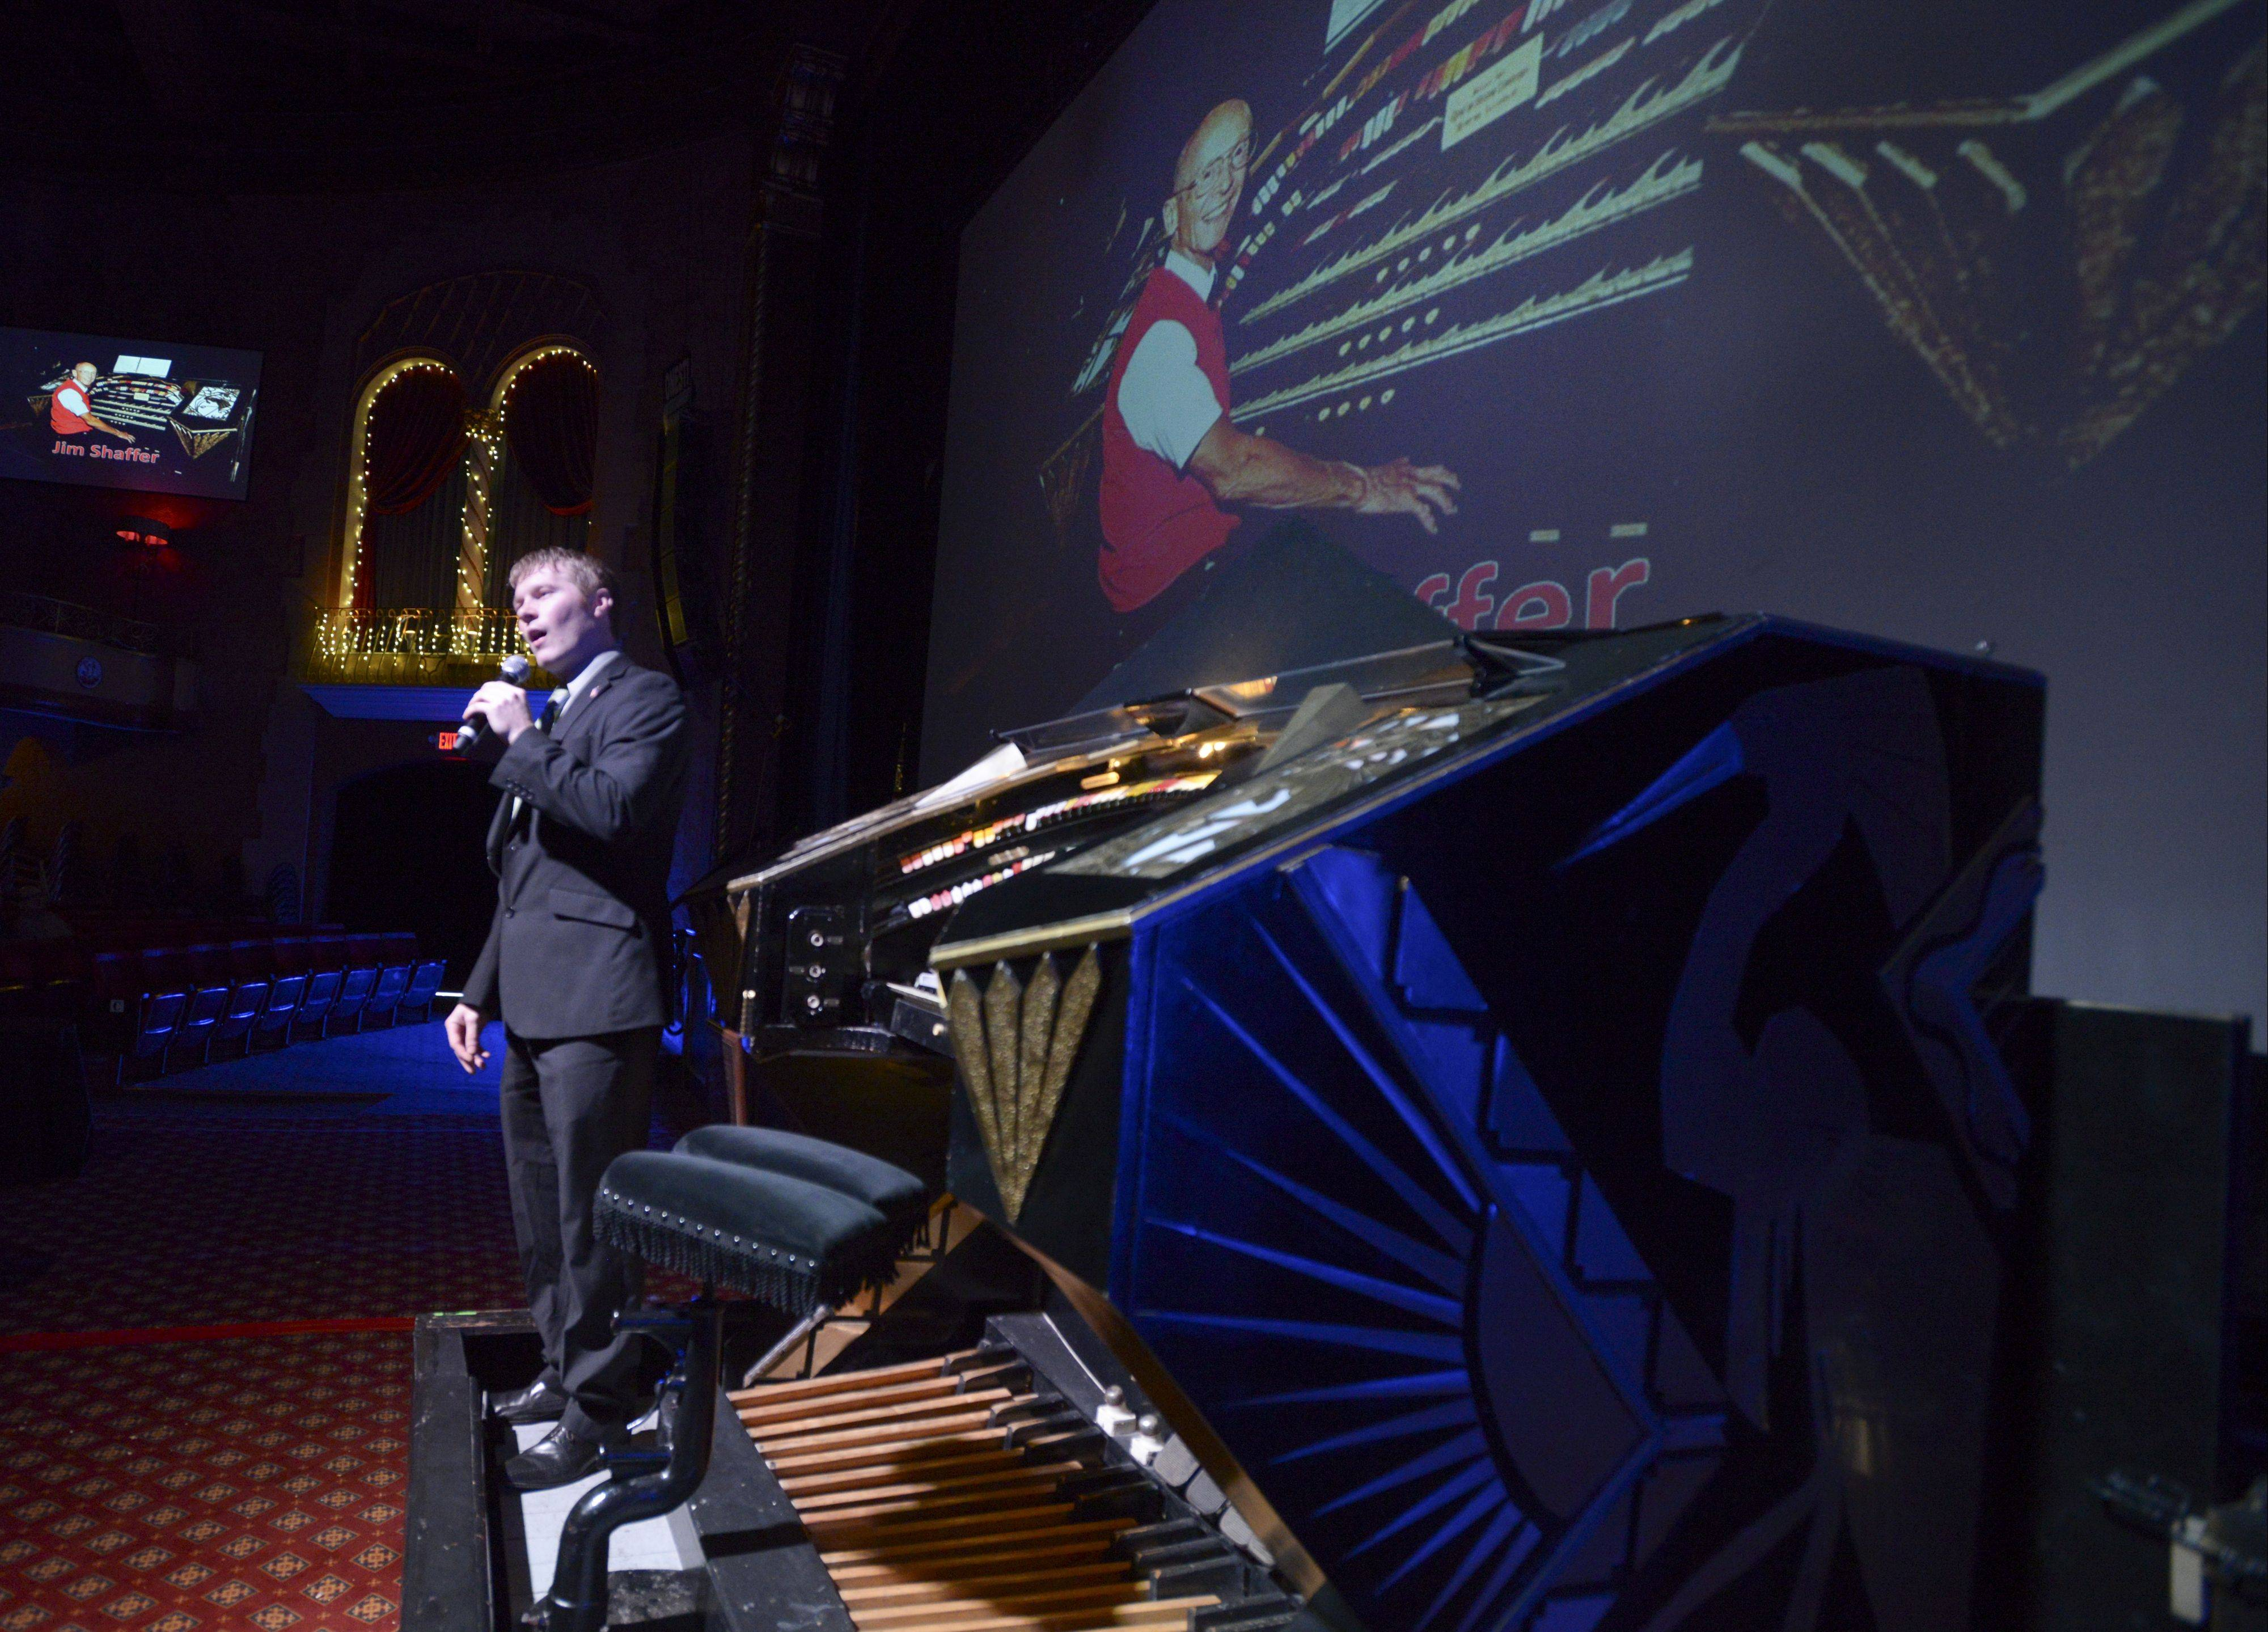 Organist Glenn Tallar speaks about Jim Shaffer before playing the organ during the tribute to Shaffer at the Arcada Theatre. Shaffer, the theater's longtime organist, died in November at 78.